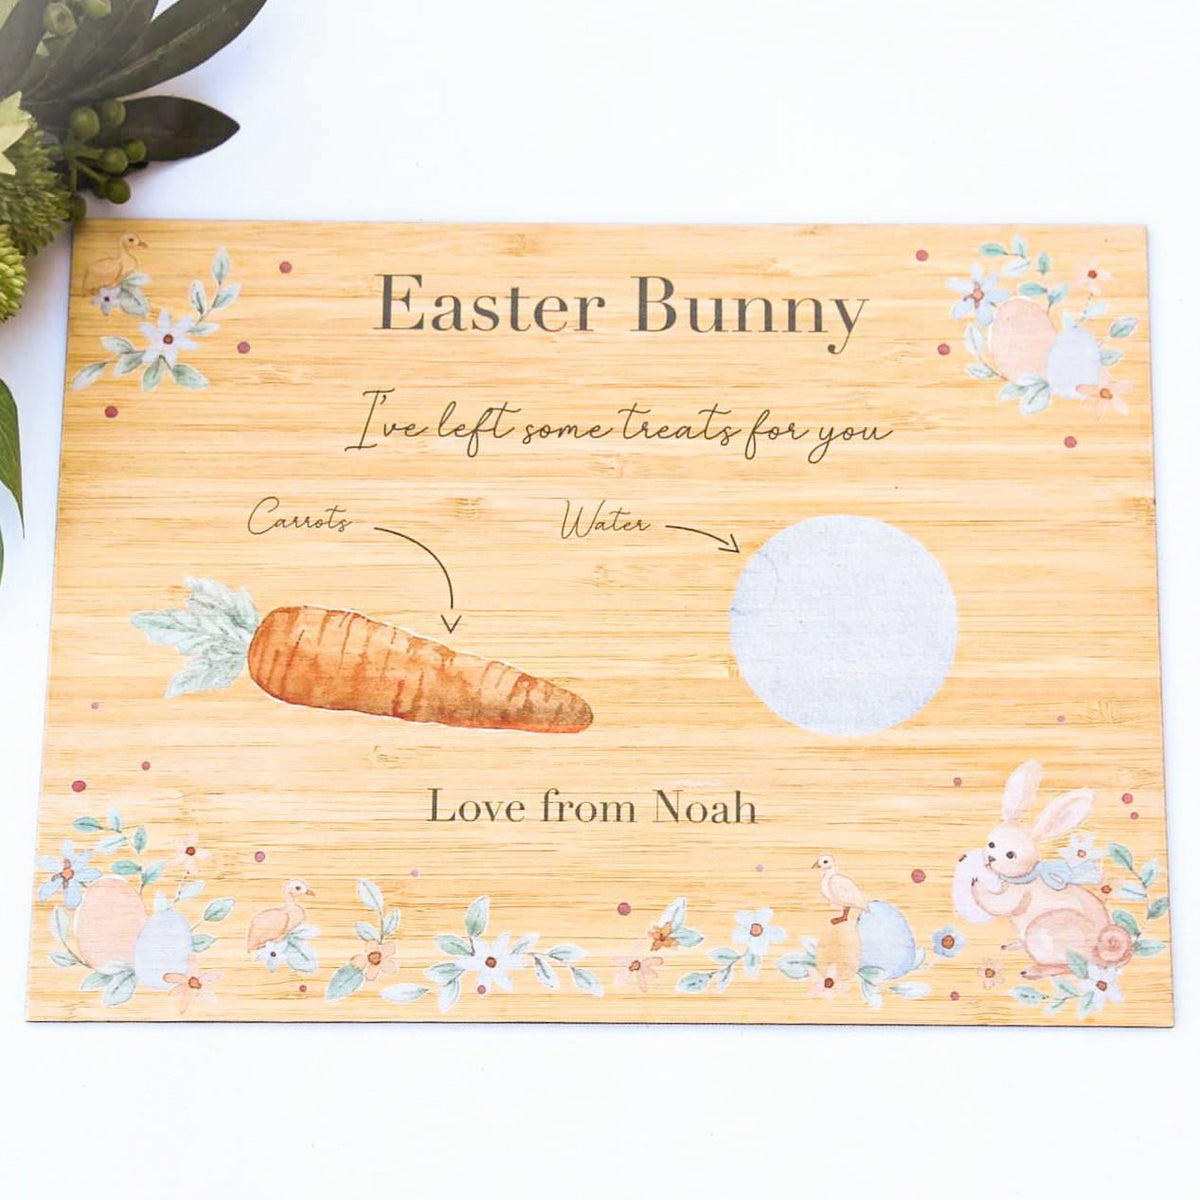 Easter Bunny Board - Colour Illustrated